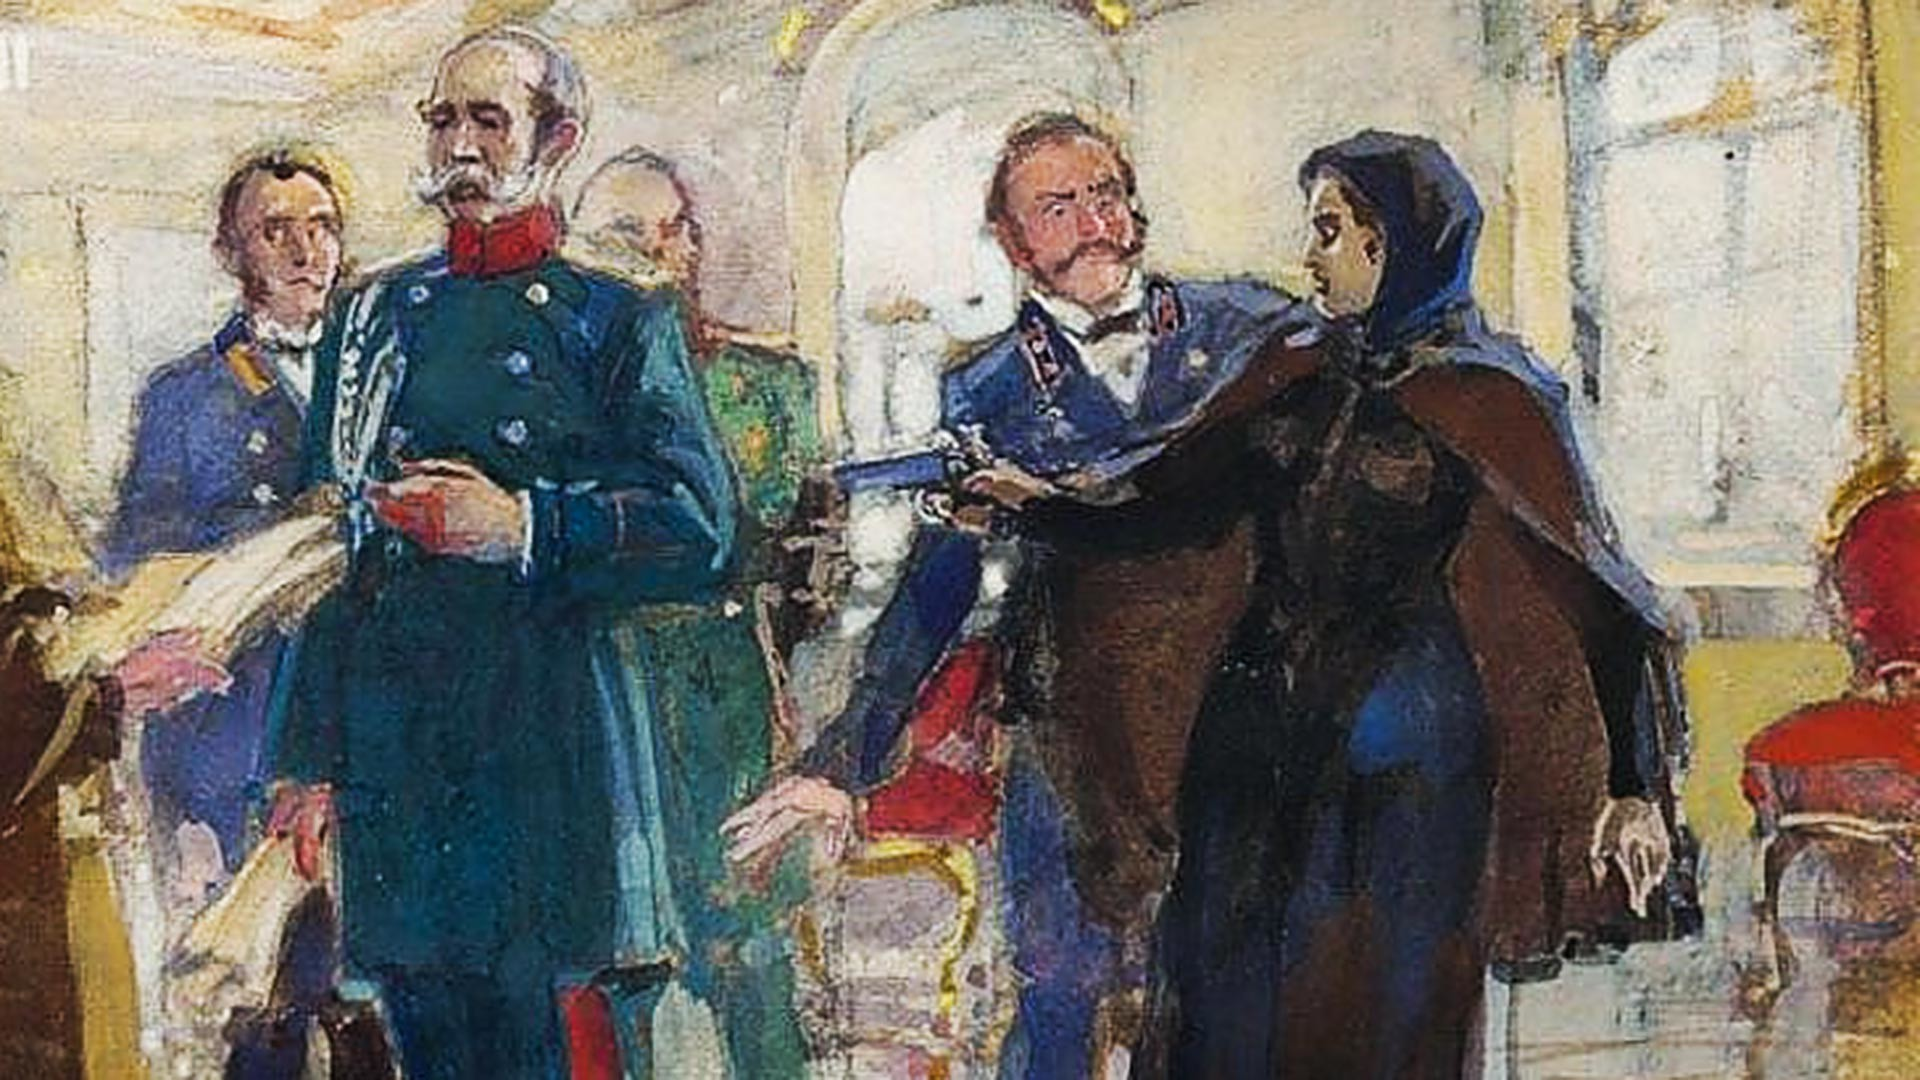 Vera Zasulich (1849-1919), the Russian revolutionary attempting the assassination of Fyodor Trepov (1803-1889), Chief of the St. Petersburg Police (1860-1878). She succeeded in only wounding him. At her trial the jury acquitted her.